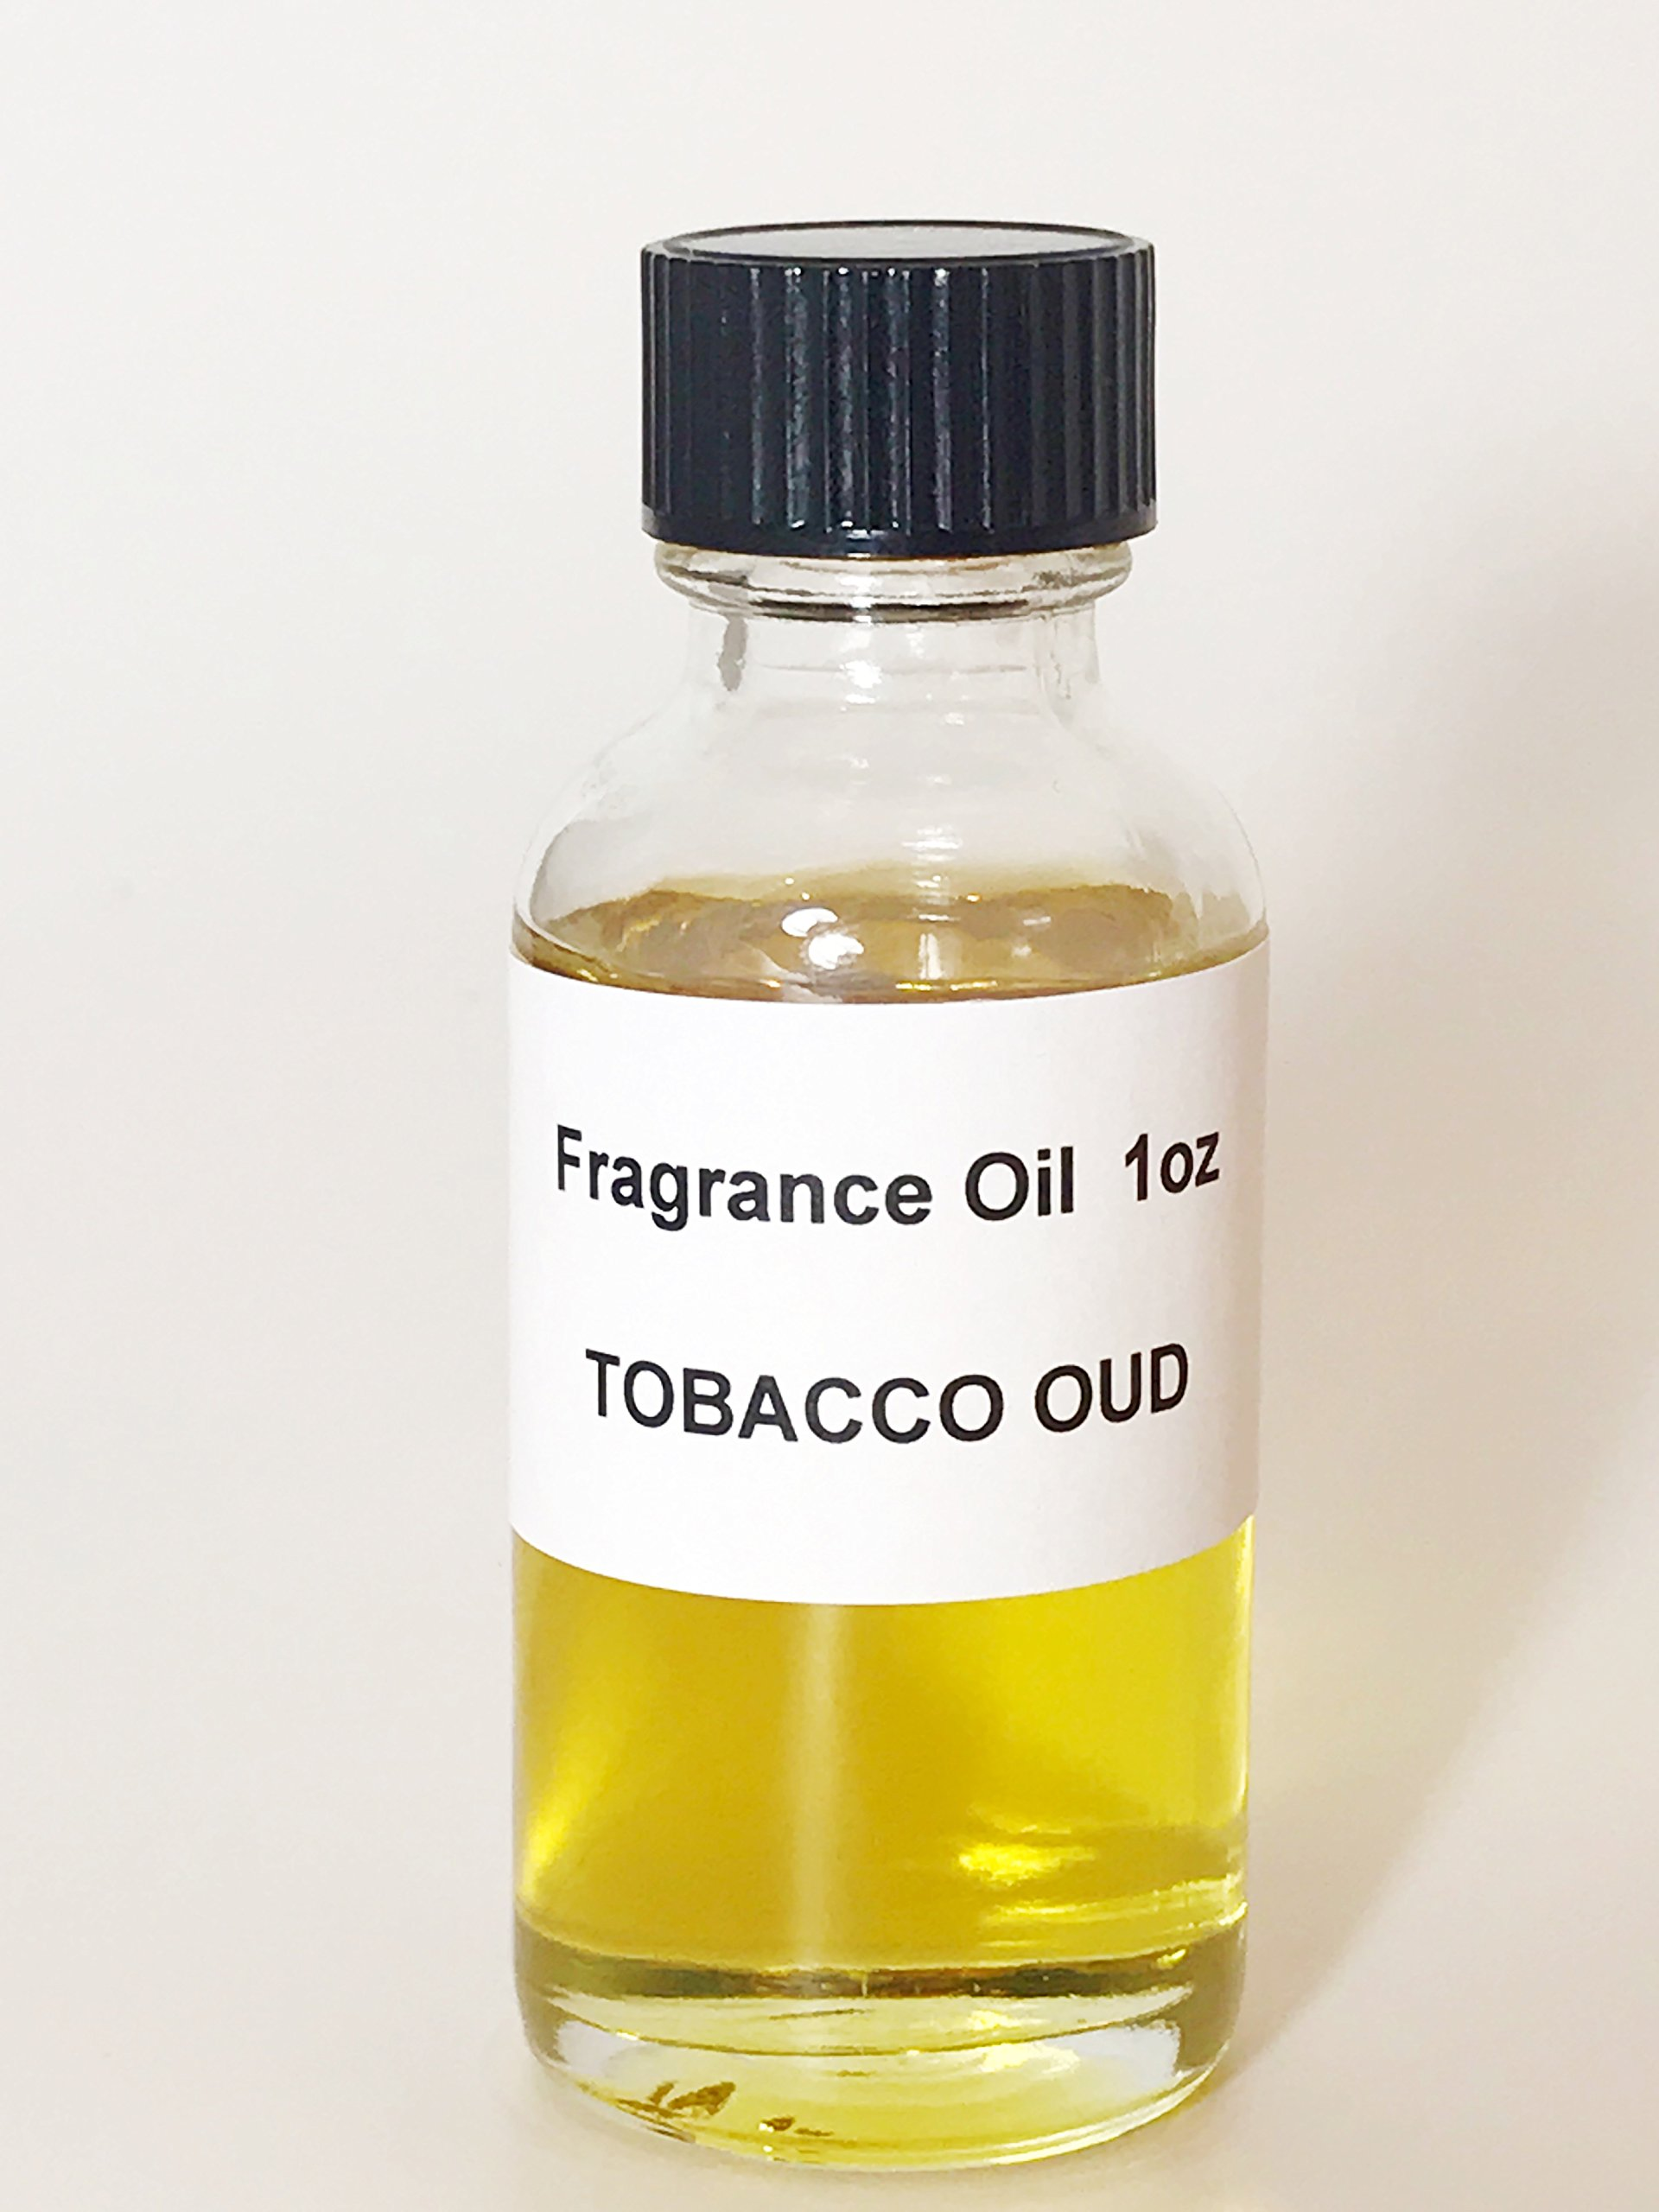 TOBACCO OUD (M) Fragrance Oil 1oz Perfume Body Oil Alcohol-Free Similar to Tobacco Oud Made in the USA